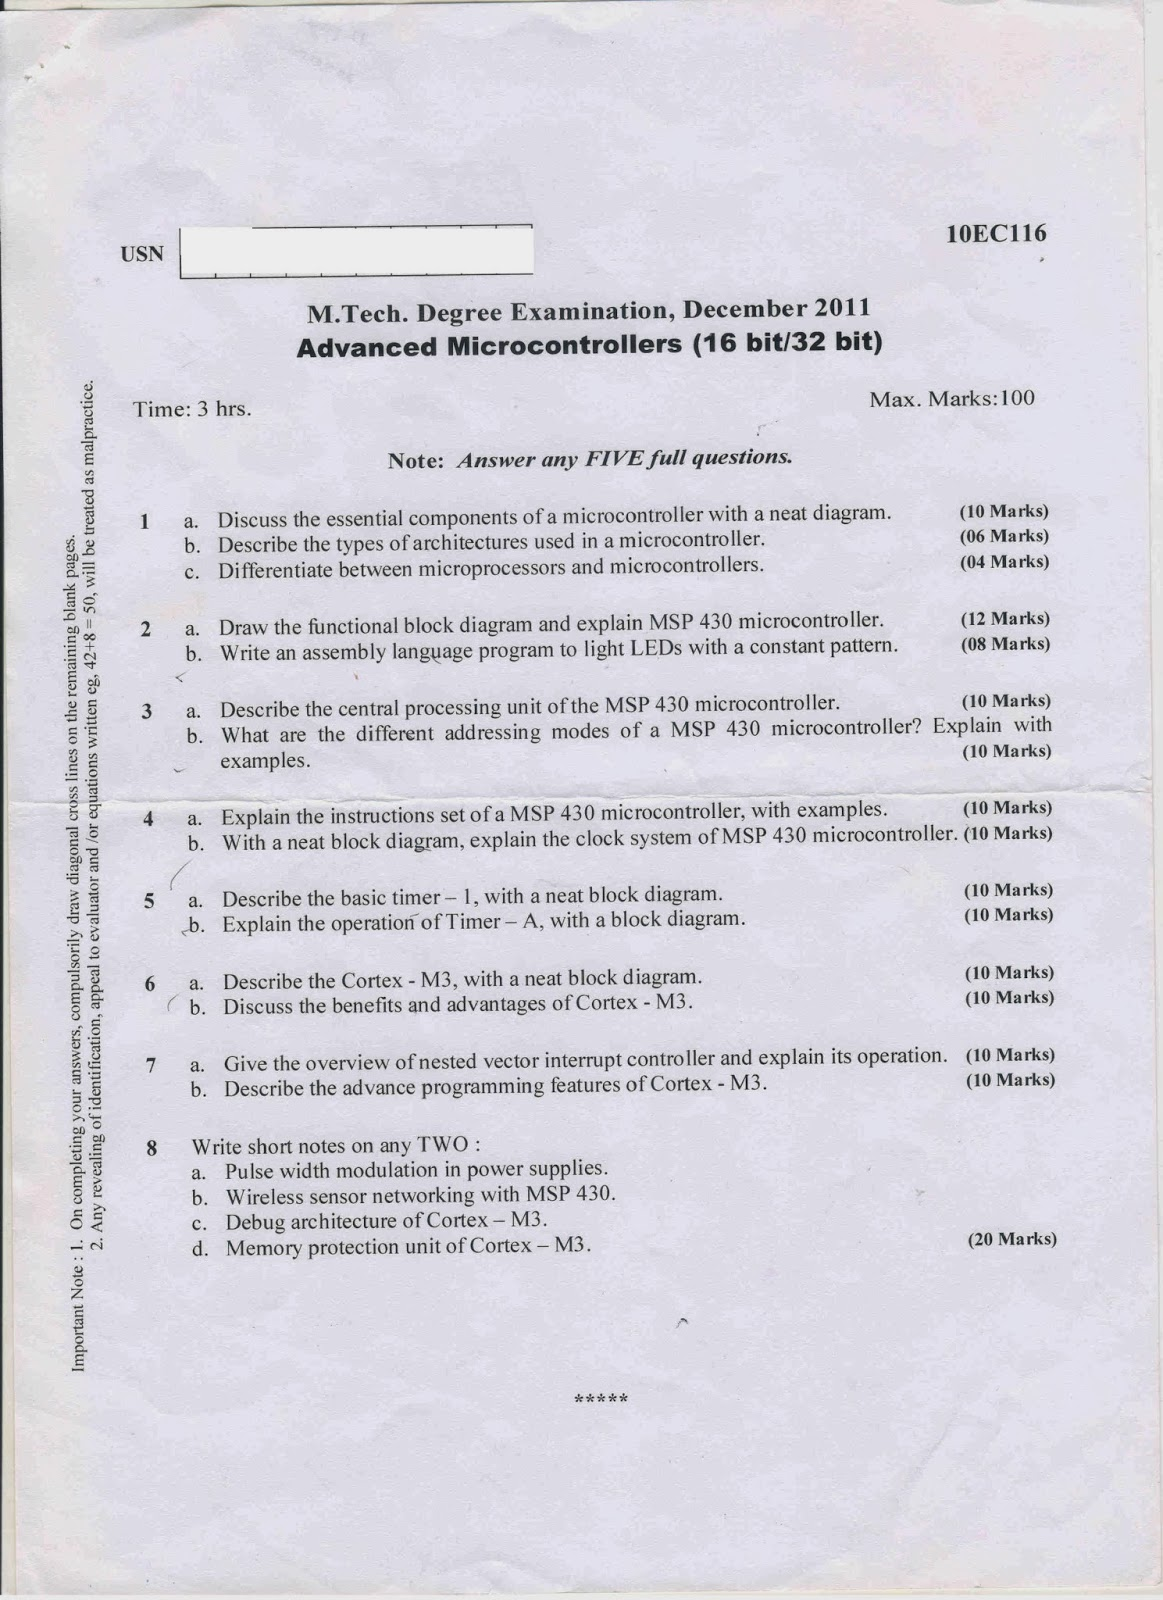 Vtu phd coursework question papers